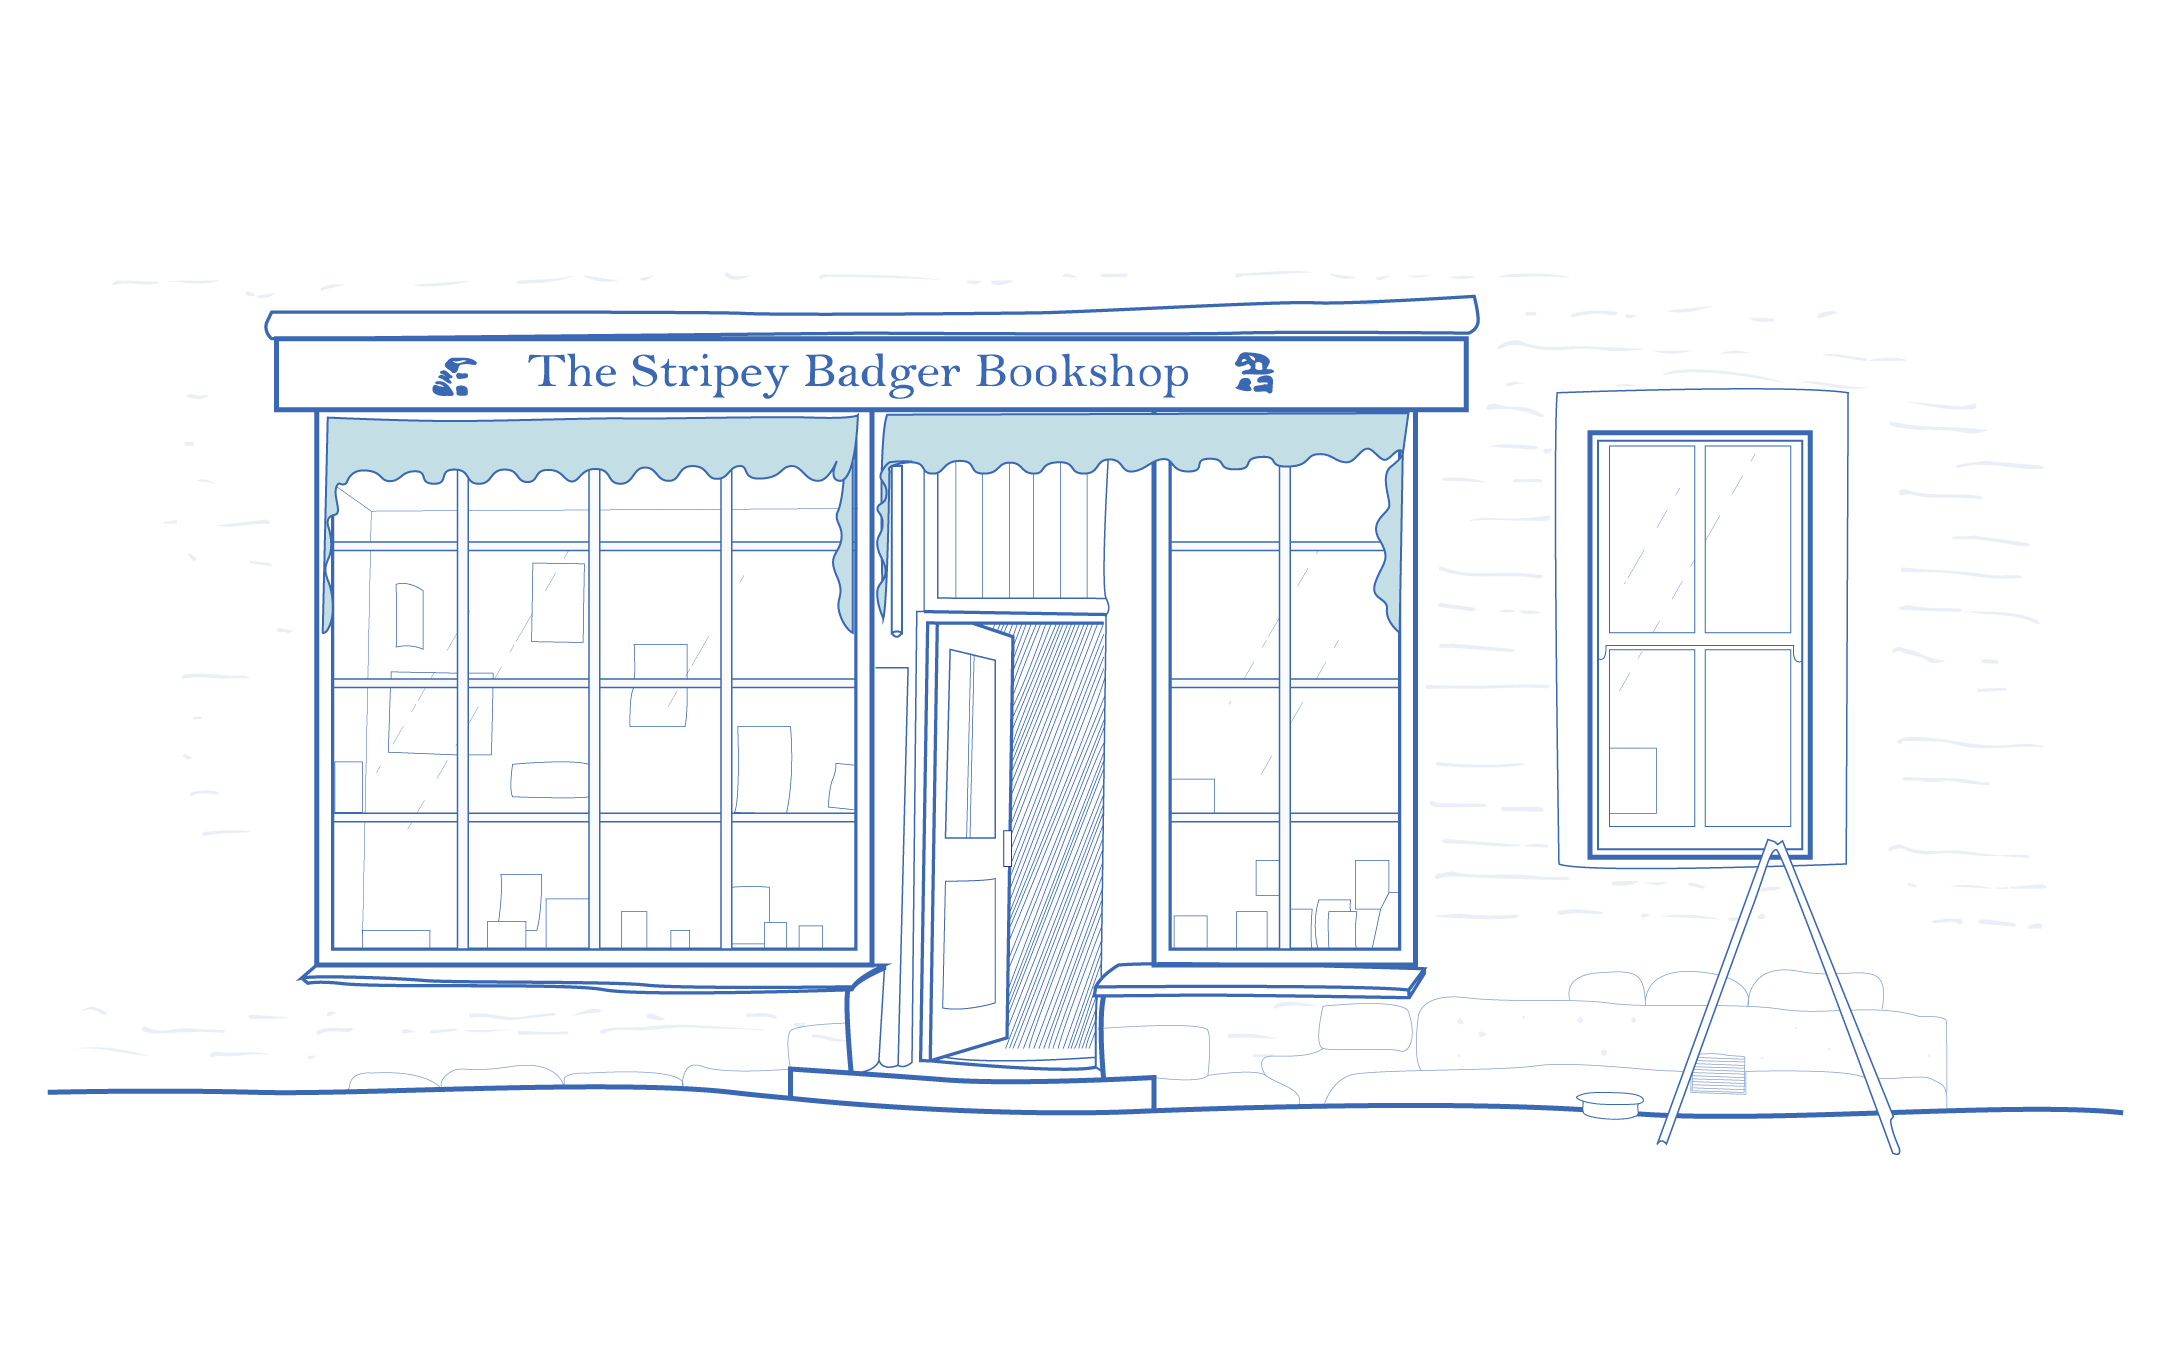 A blue and white architectural illustration of The Stripey Badger Bookshop in Grassington, North Yorkshire.